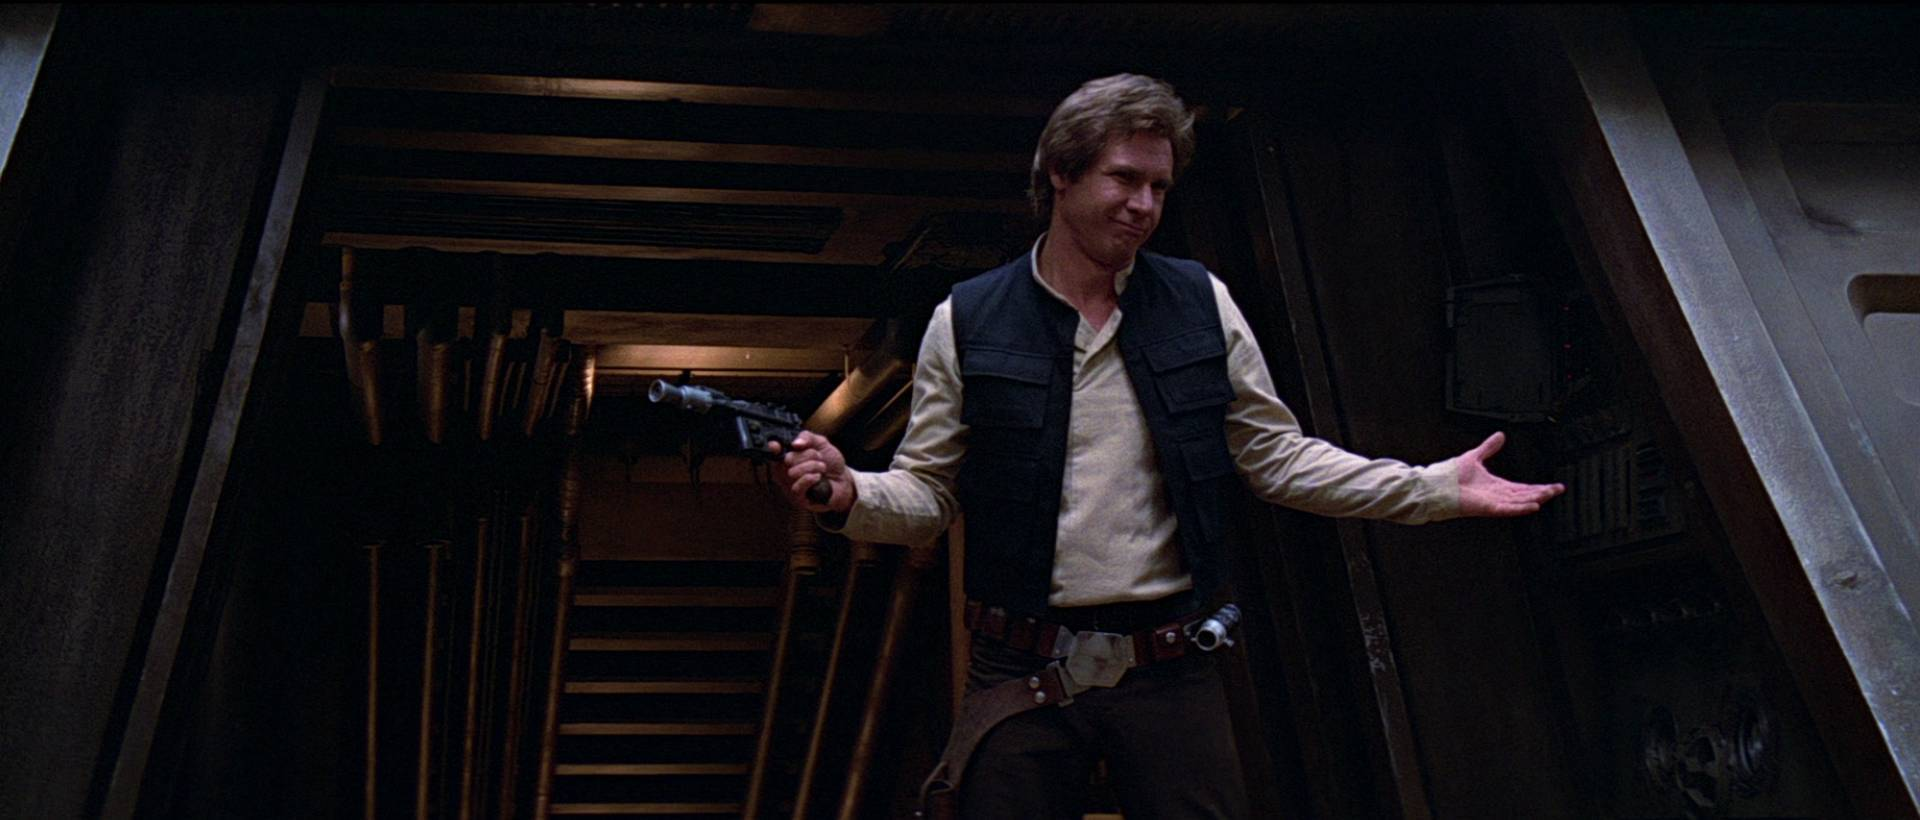 star-wars-episode-vi-han-solo.jpg